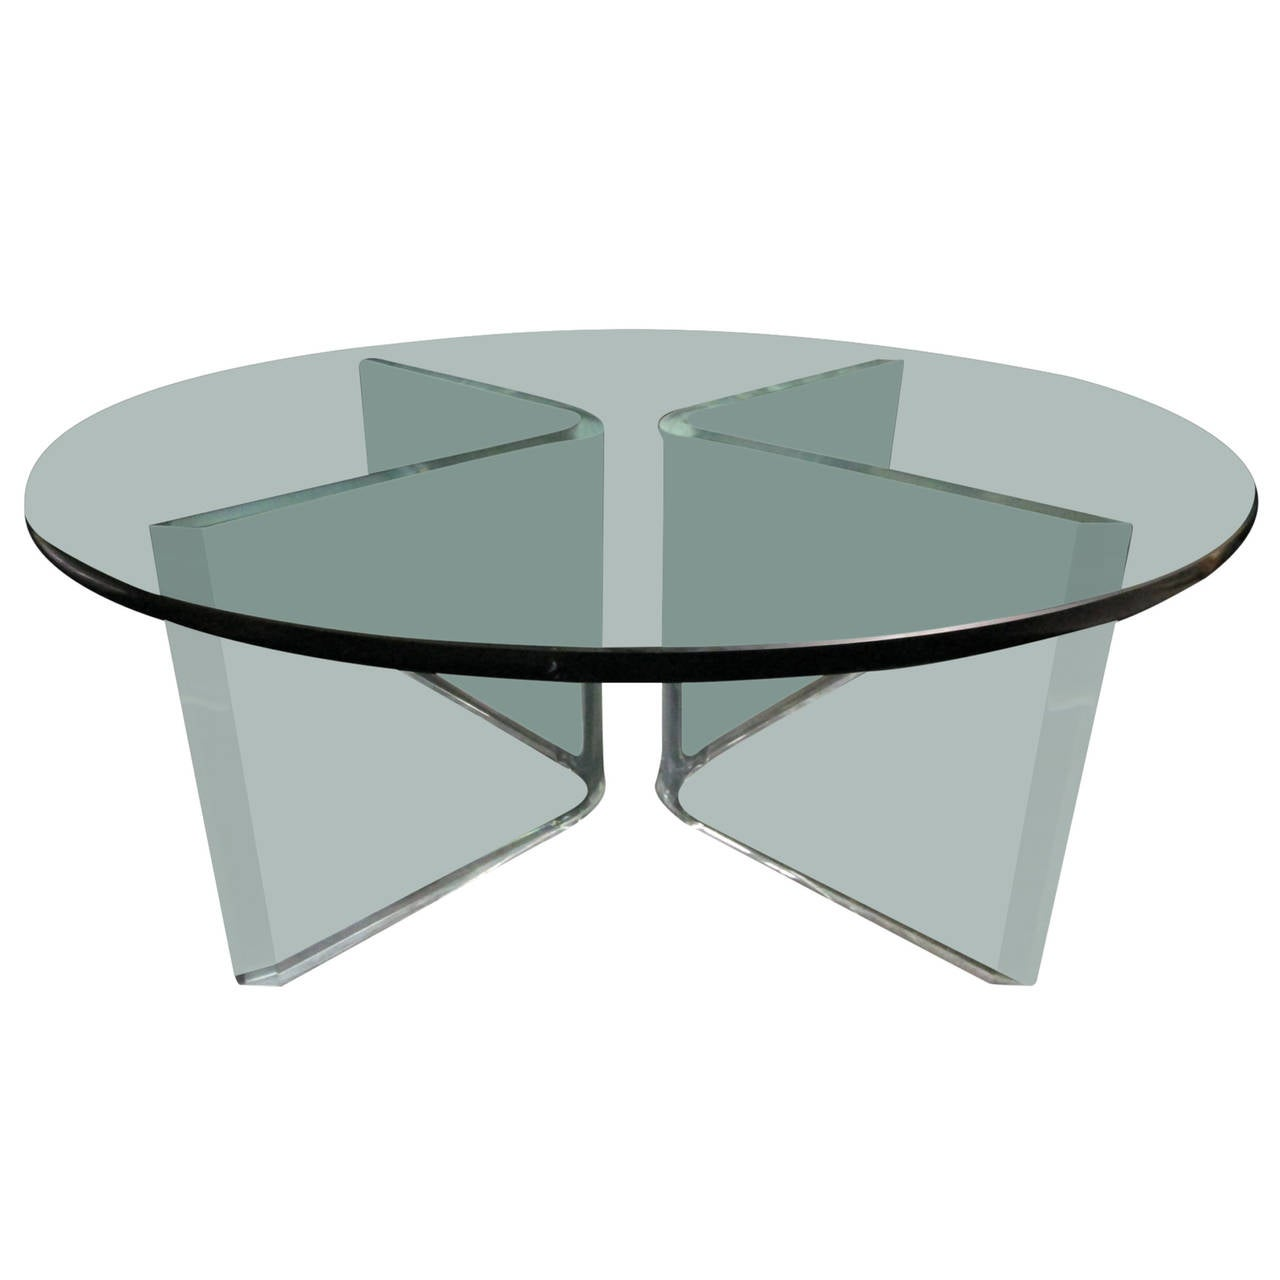 X shape lucite base coffee table for sale at 1stdibs Bases for coffee tables